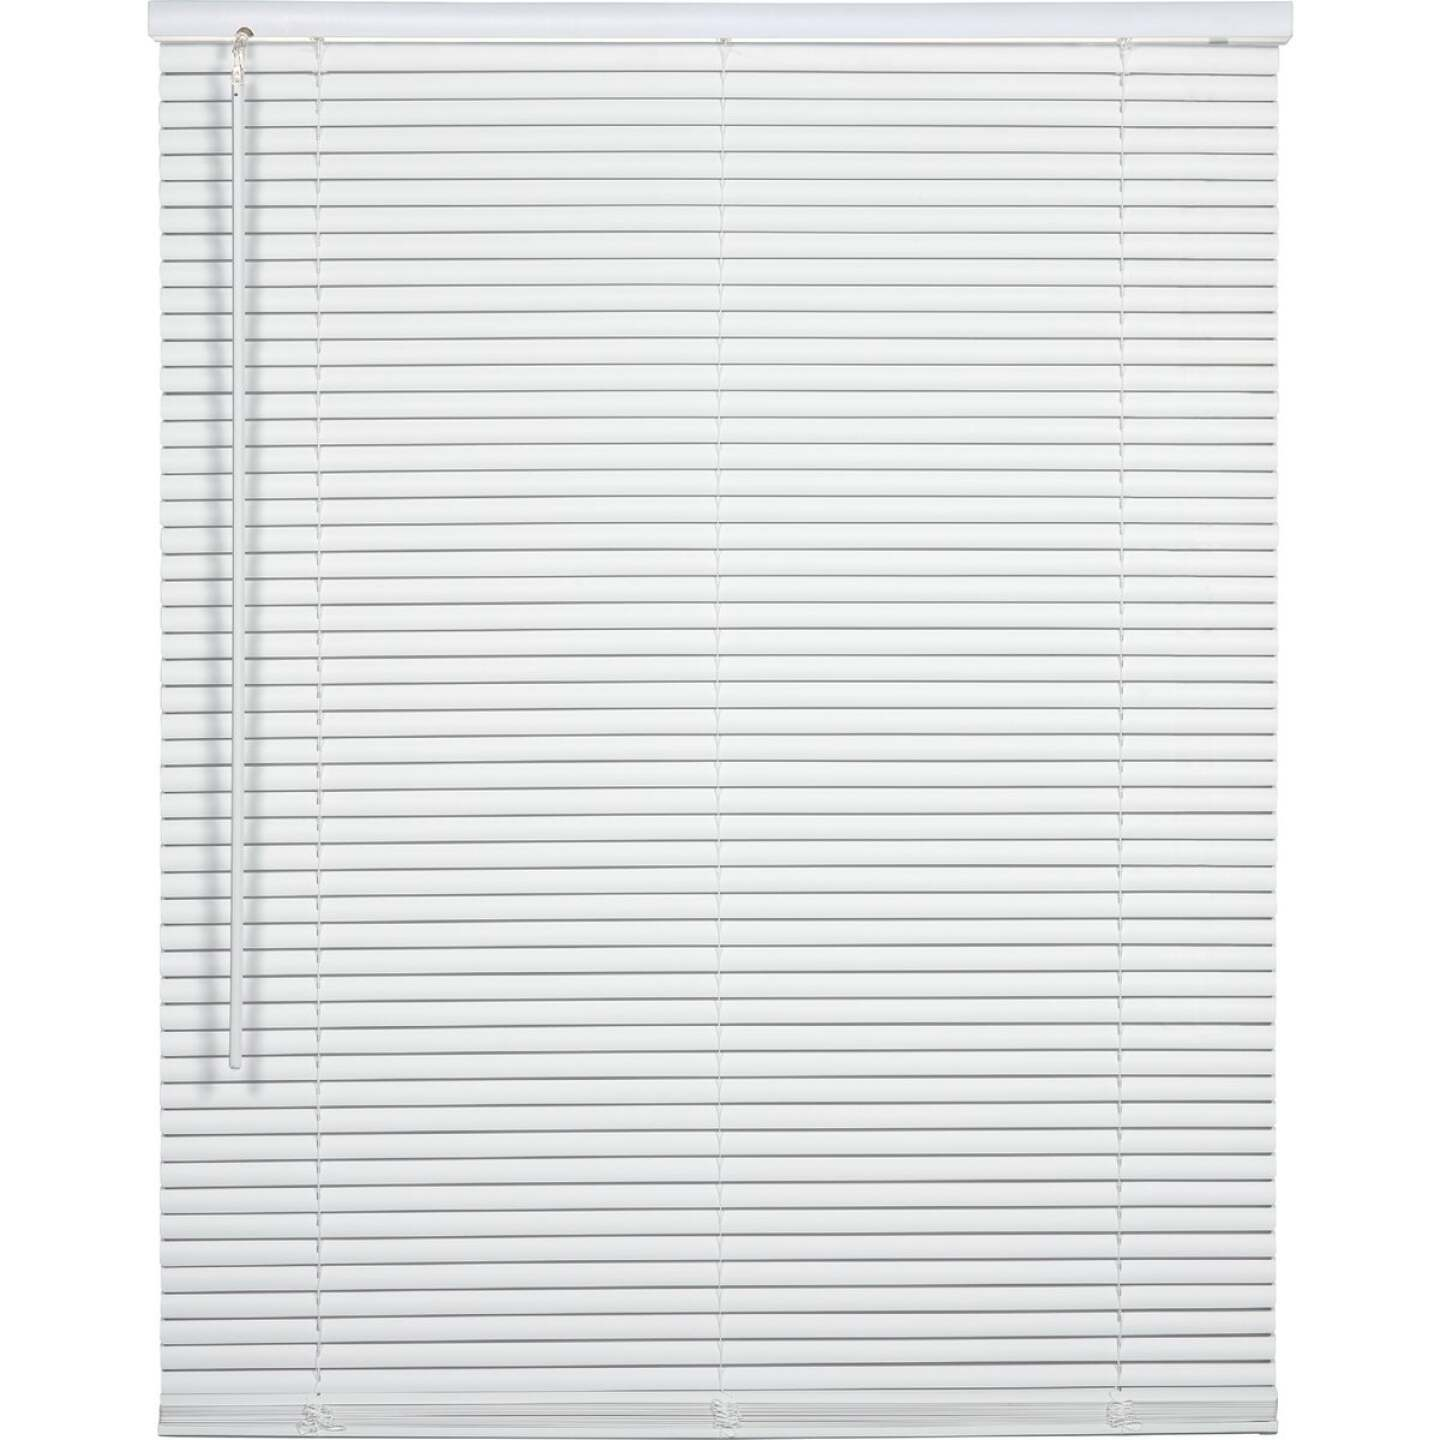 Home Impressions 27 In. x 64 In. x 1 In. White Vinyl Light Filtering Cordless Mini Blind Image 1